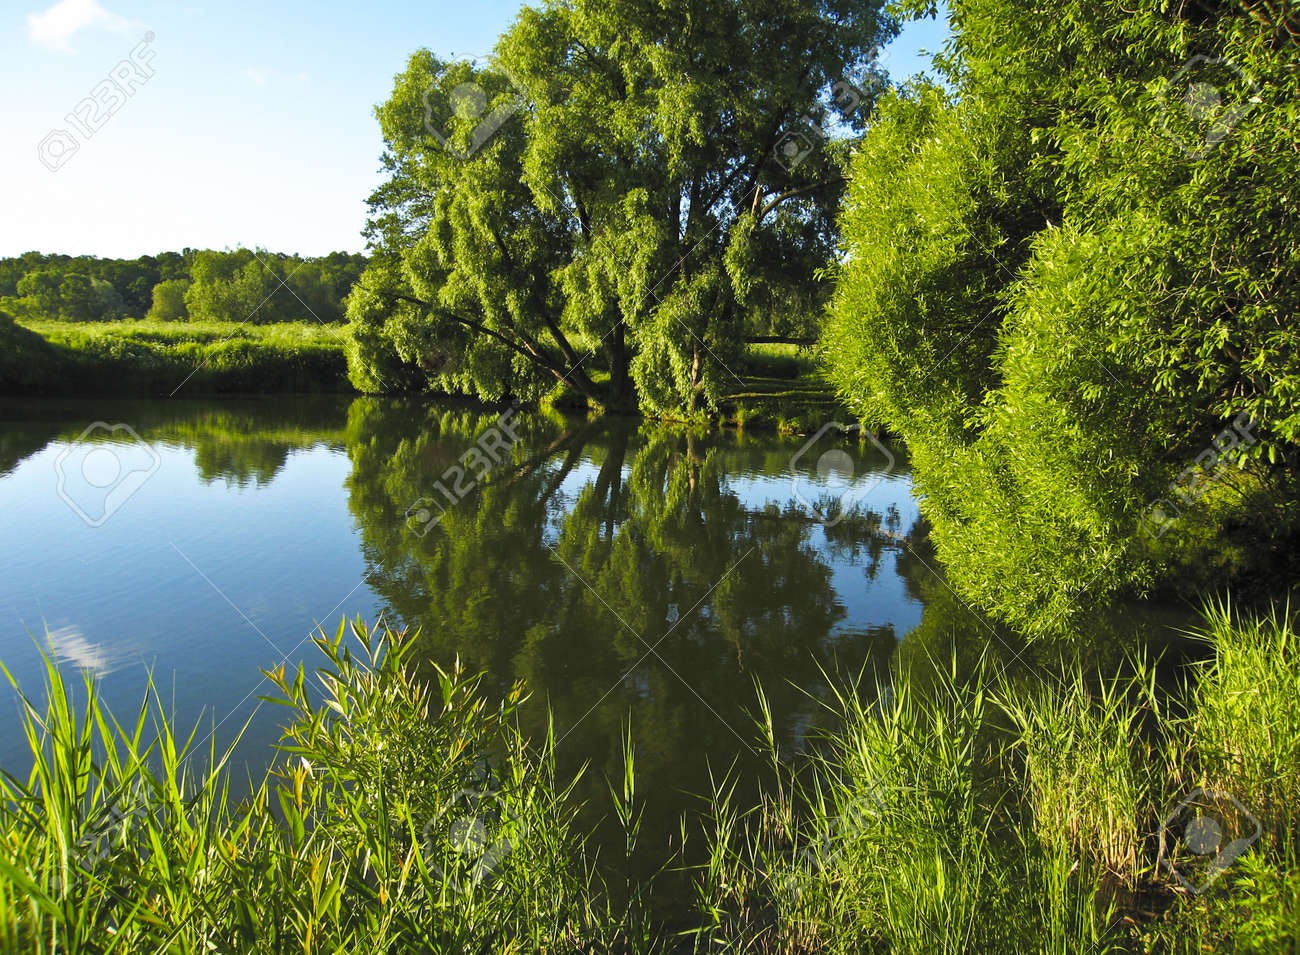 Summer landscape with water - lake with big willow trees and grass on banks, reflection of plants in water. Recorded in Izmaylovskiy park in Moscow. Stock Photo - 14034054